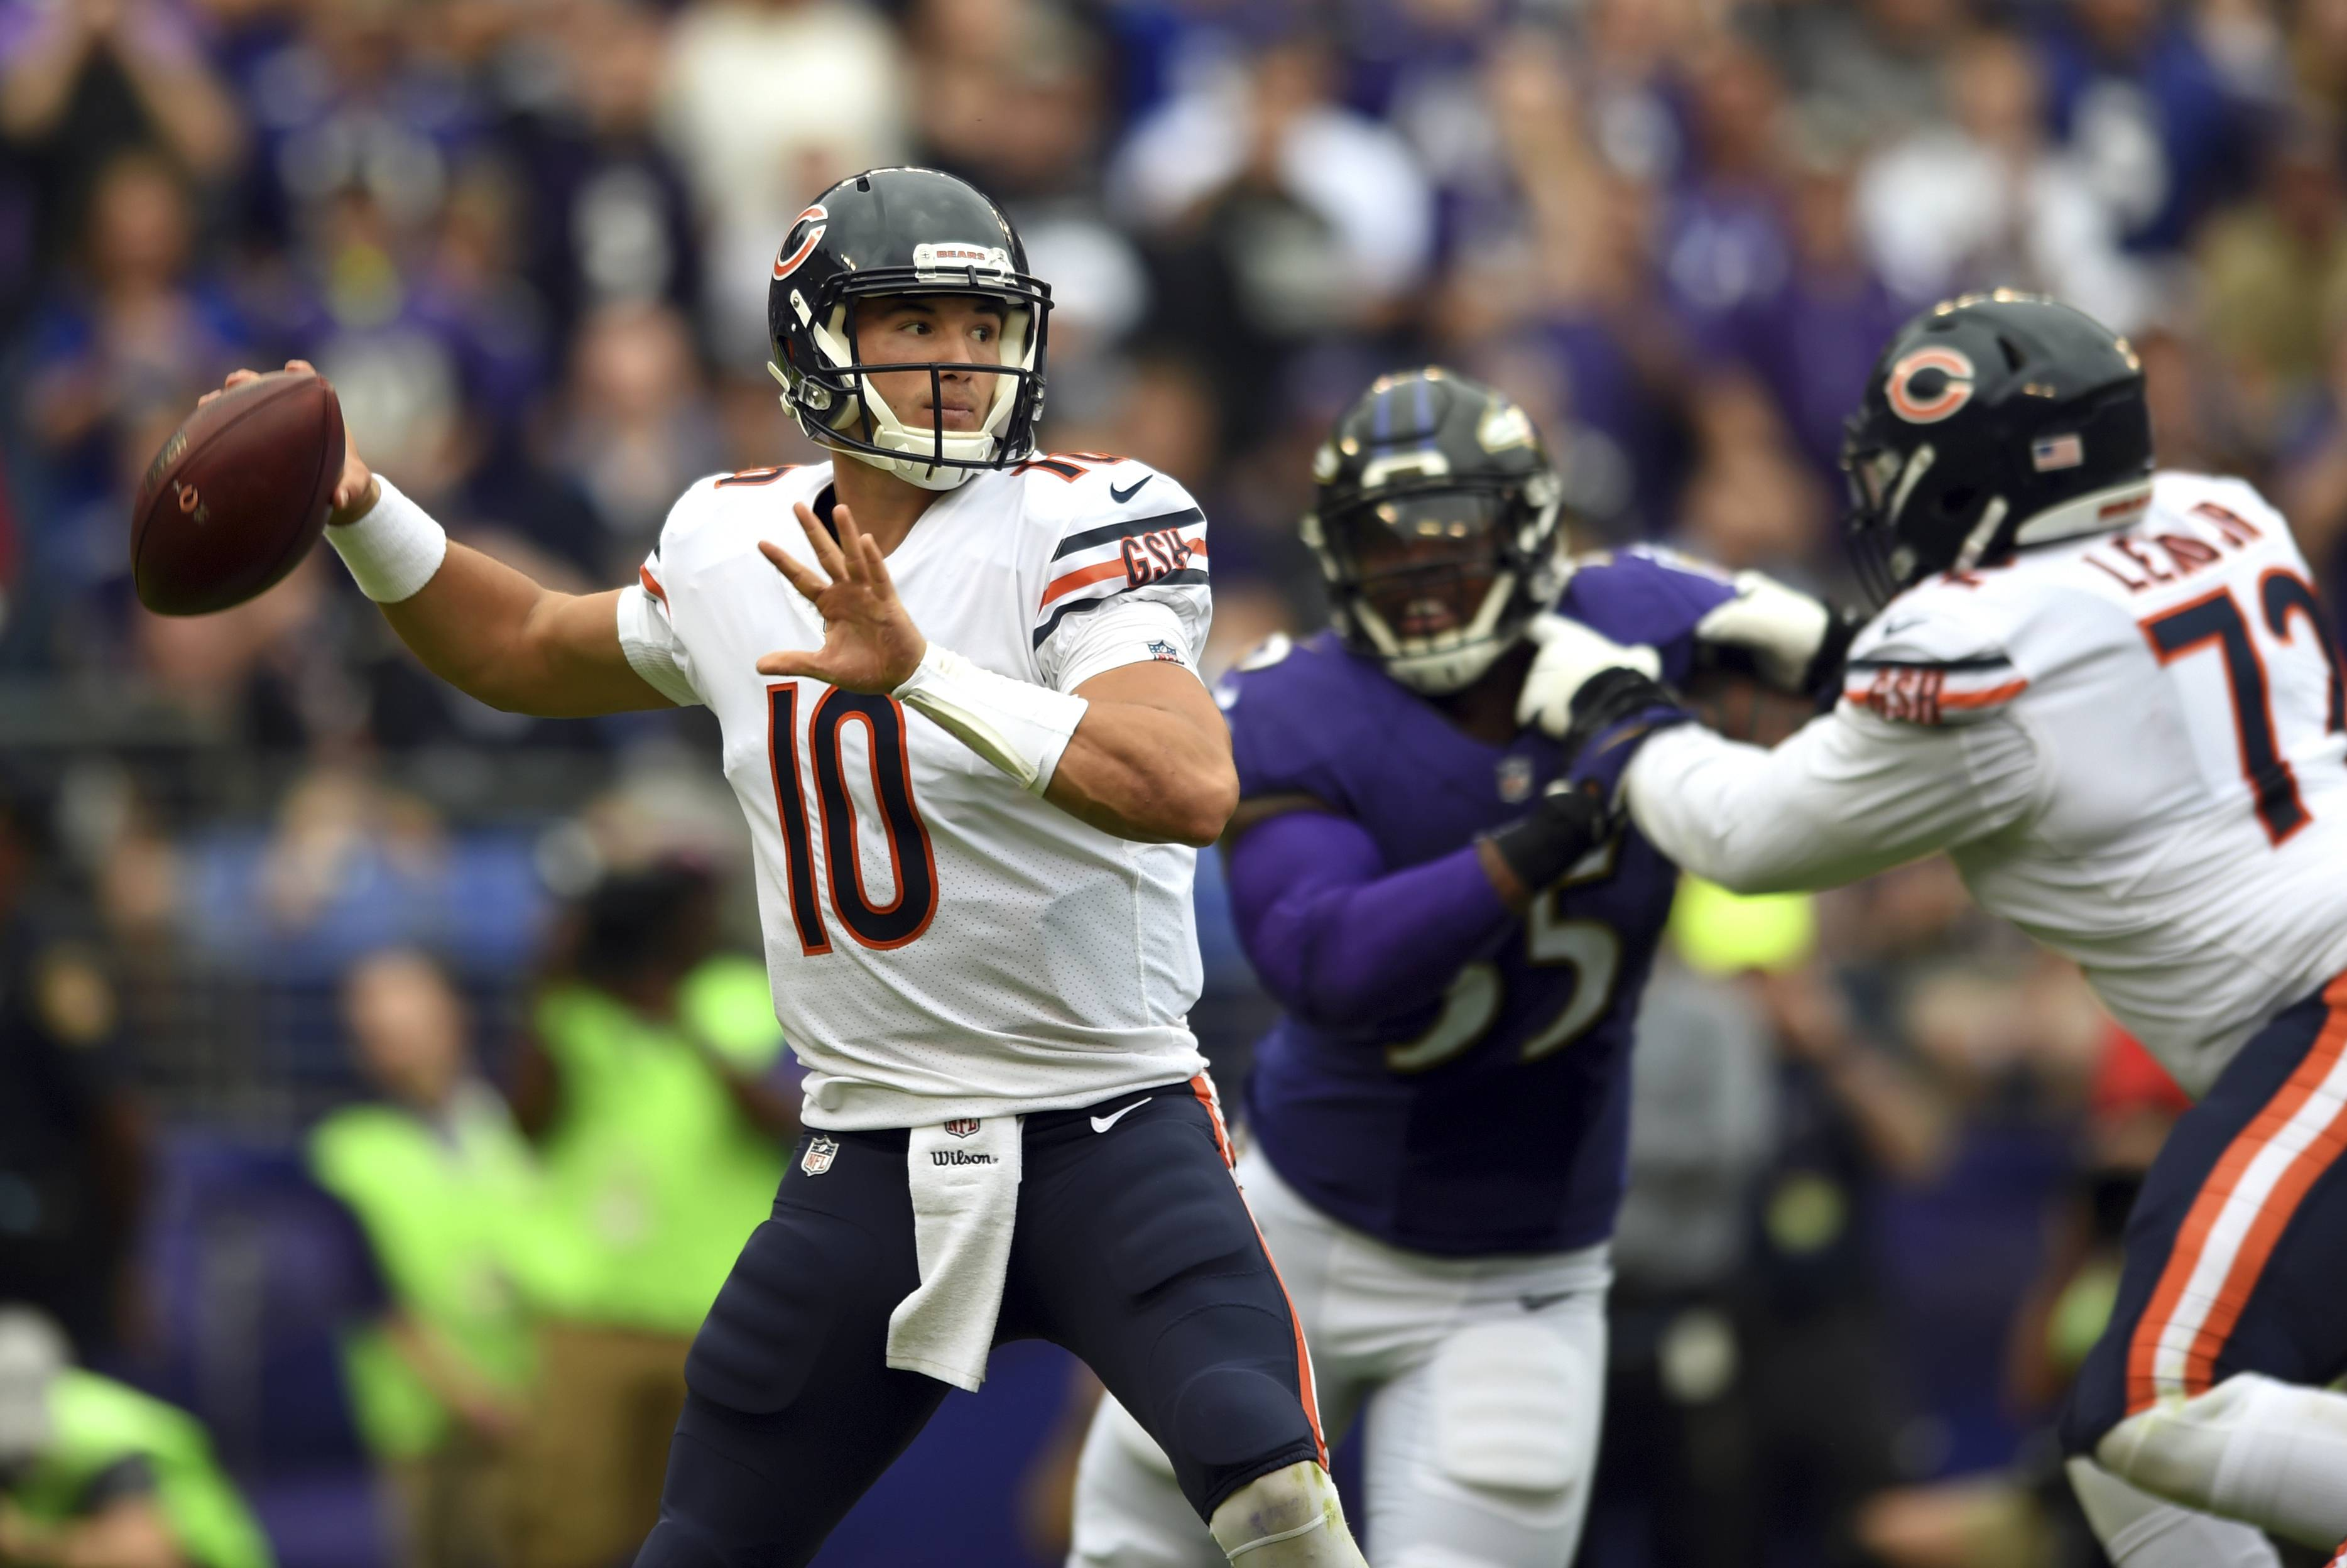 Chicago Bears quarterback Mitchell Trubisky (10) throws to a receiver in the first half of an NFL football game against the Baltimore Ravens, Sunday, Oct. 15, 2017, in Baltimore.